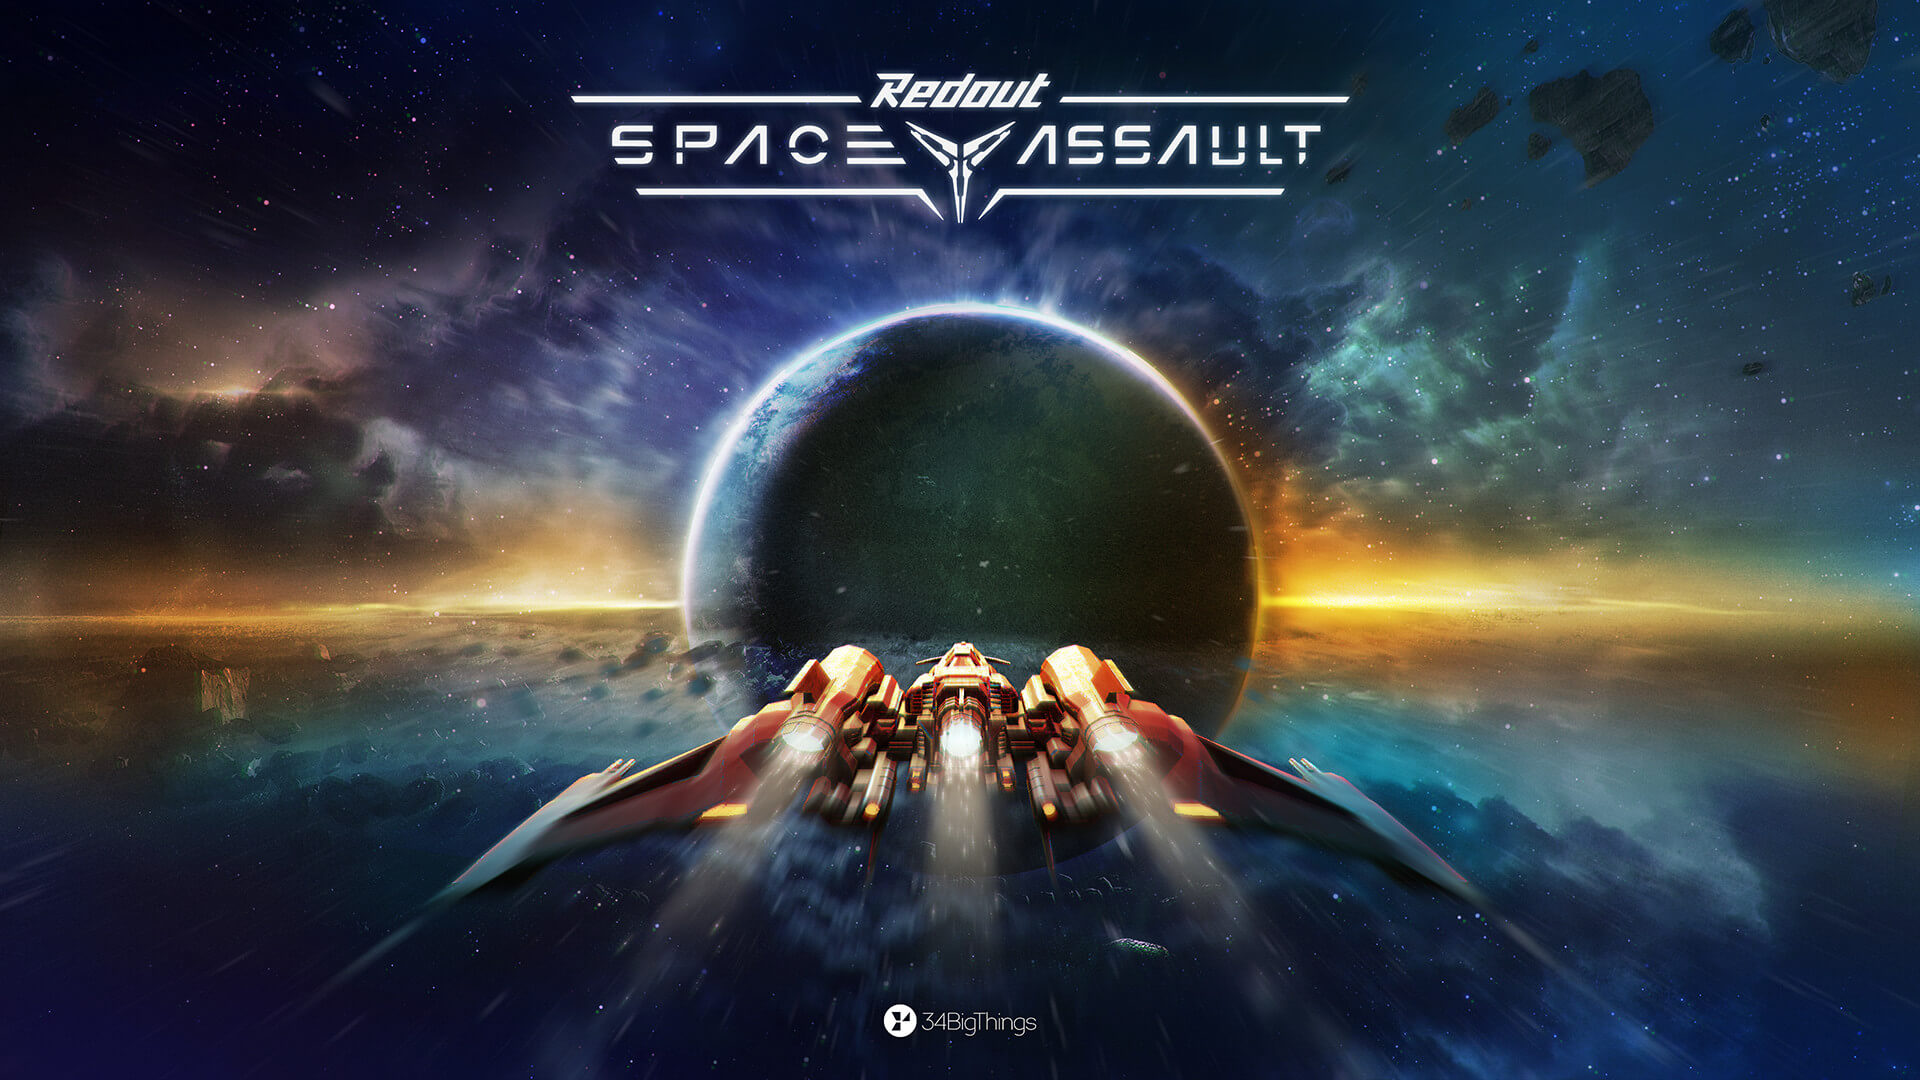 Redout: Space Assault Free PC Download